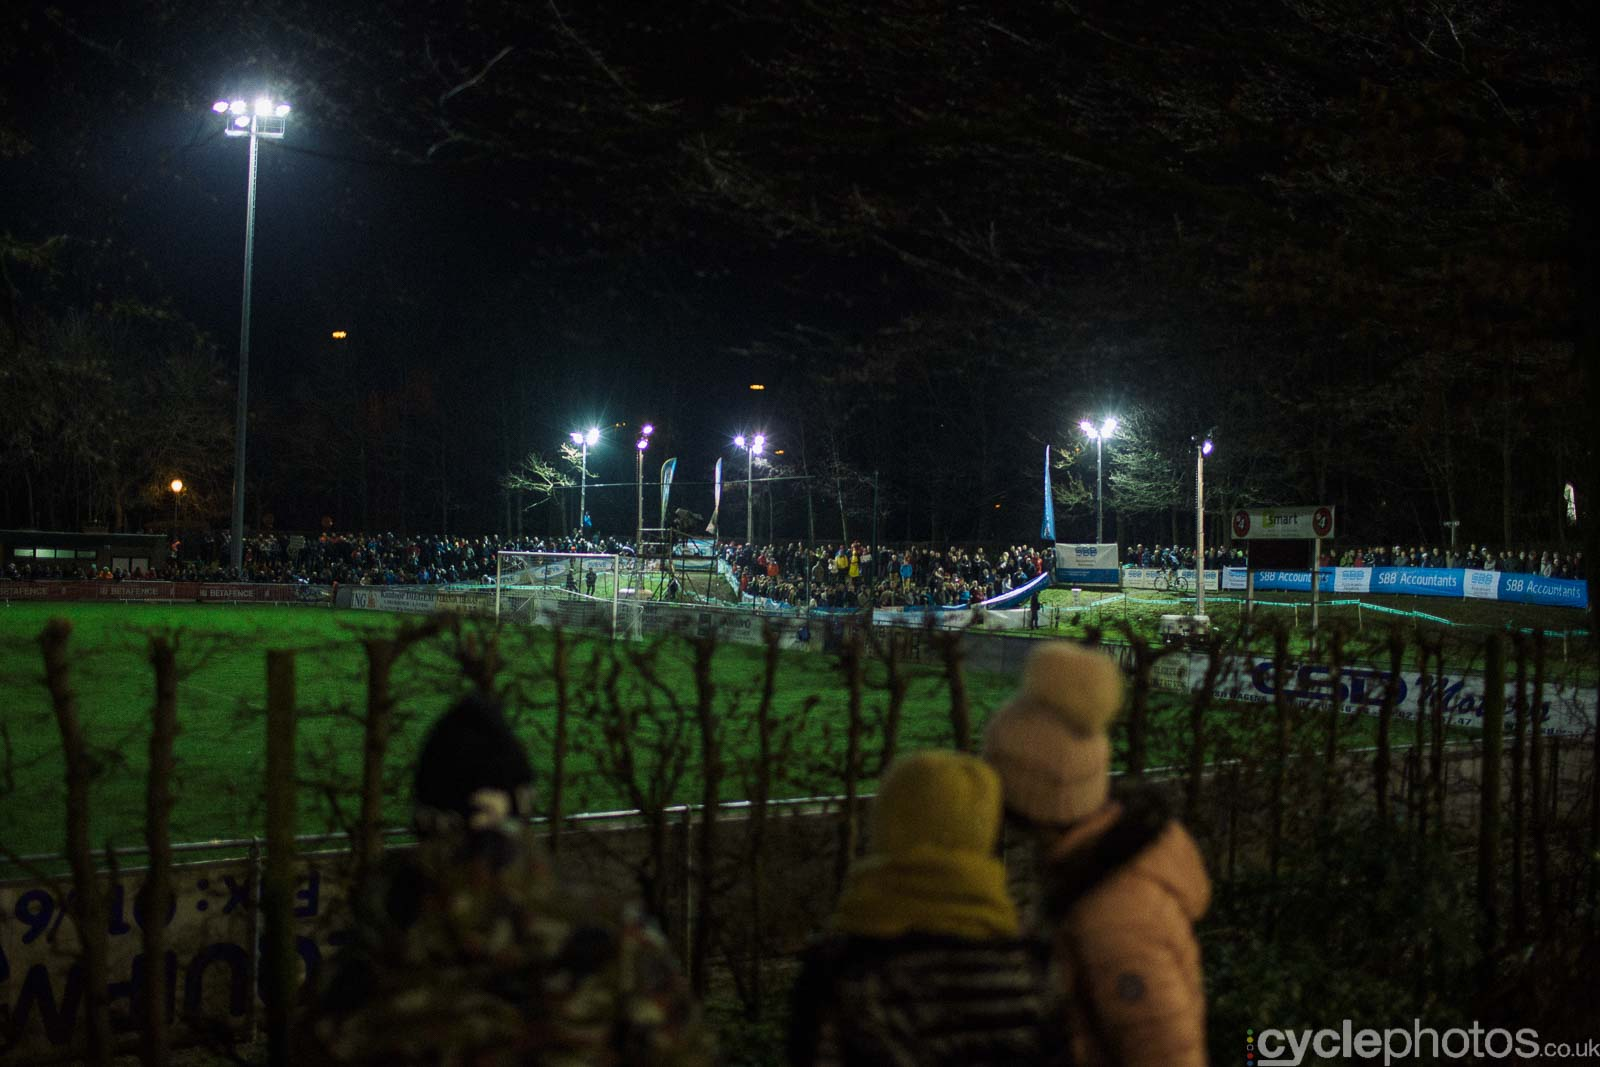 2015-cyclephotos-cyclocross-diegem-174033-spectators